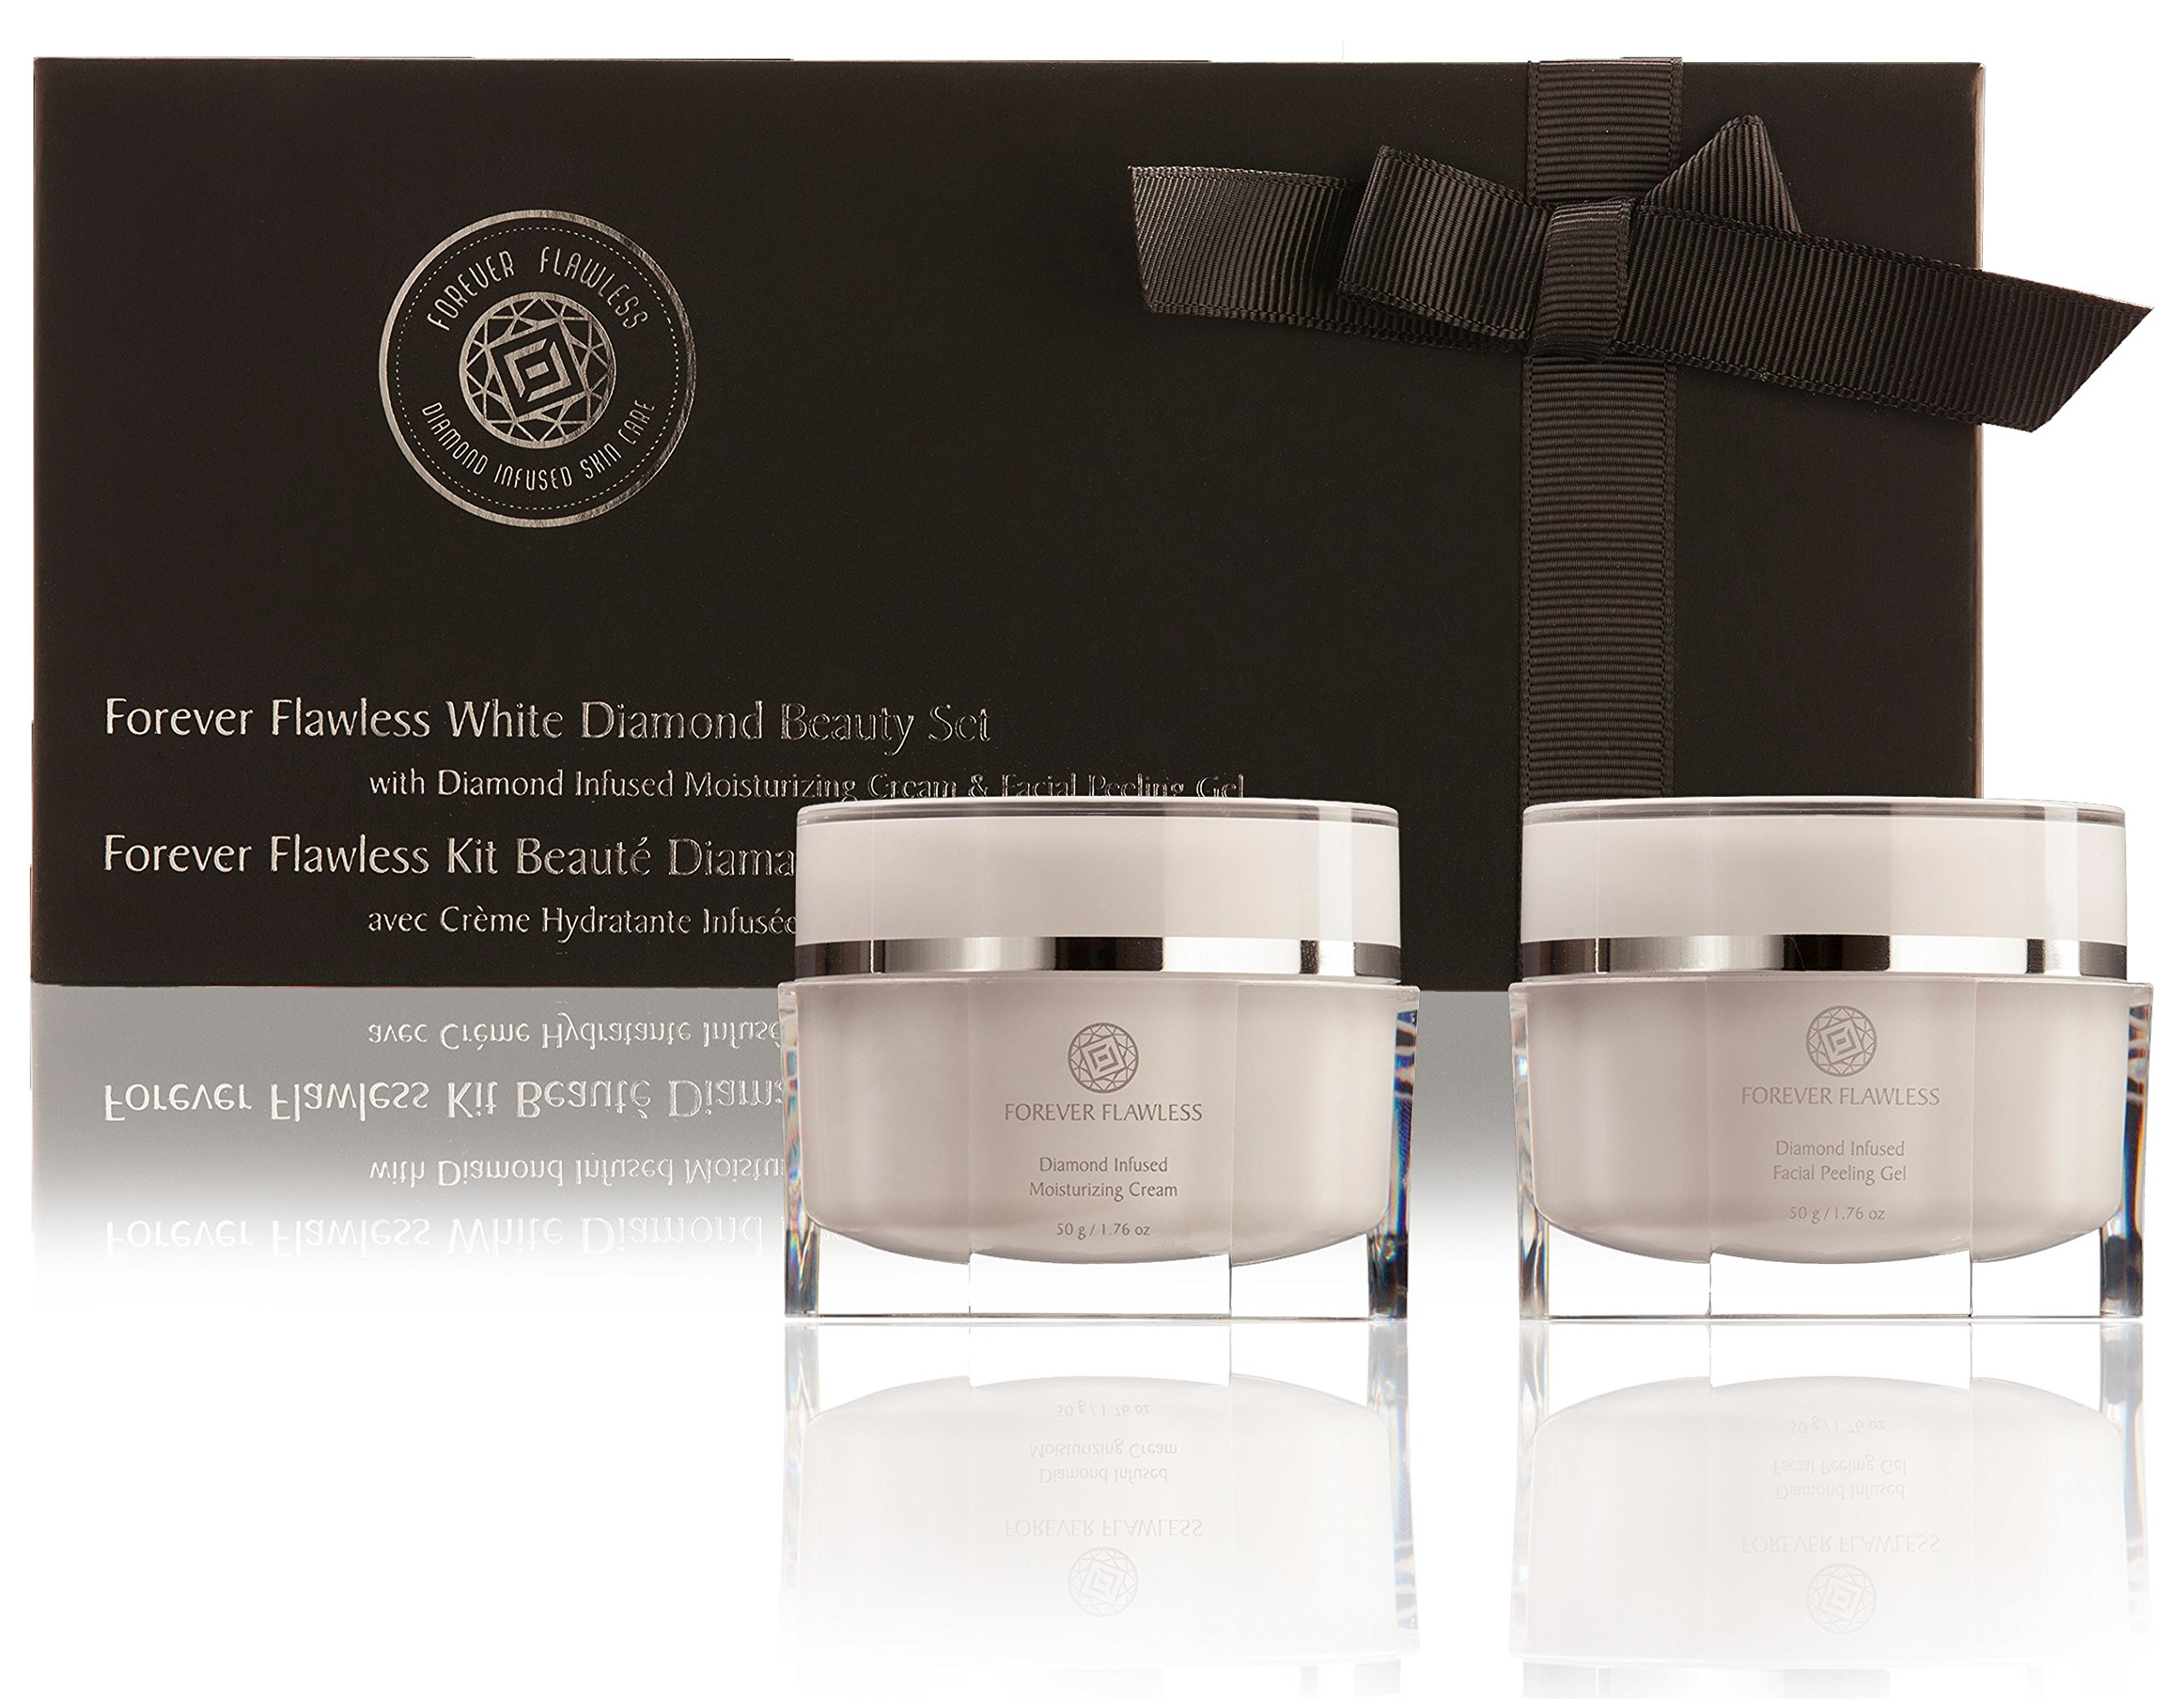 Forever Flawless Limited Edition White Diamond Beauty Set With Complete Two-Step Facial Peeling and Moisturizing Treatment